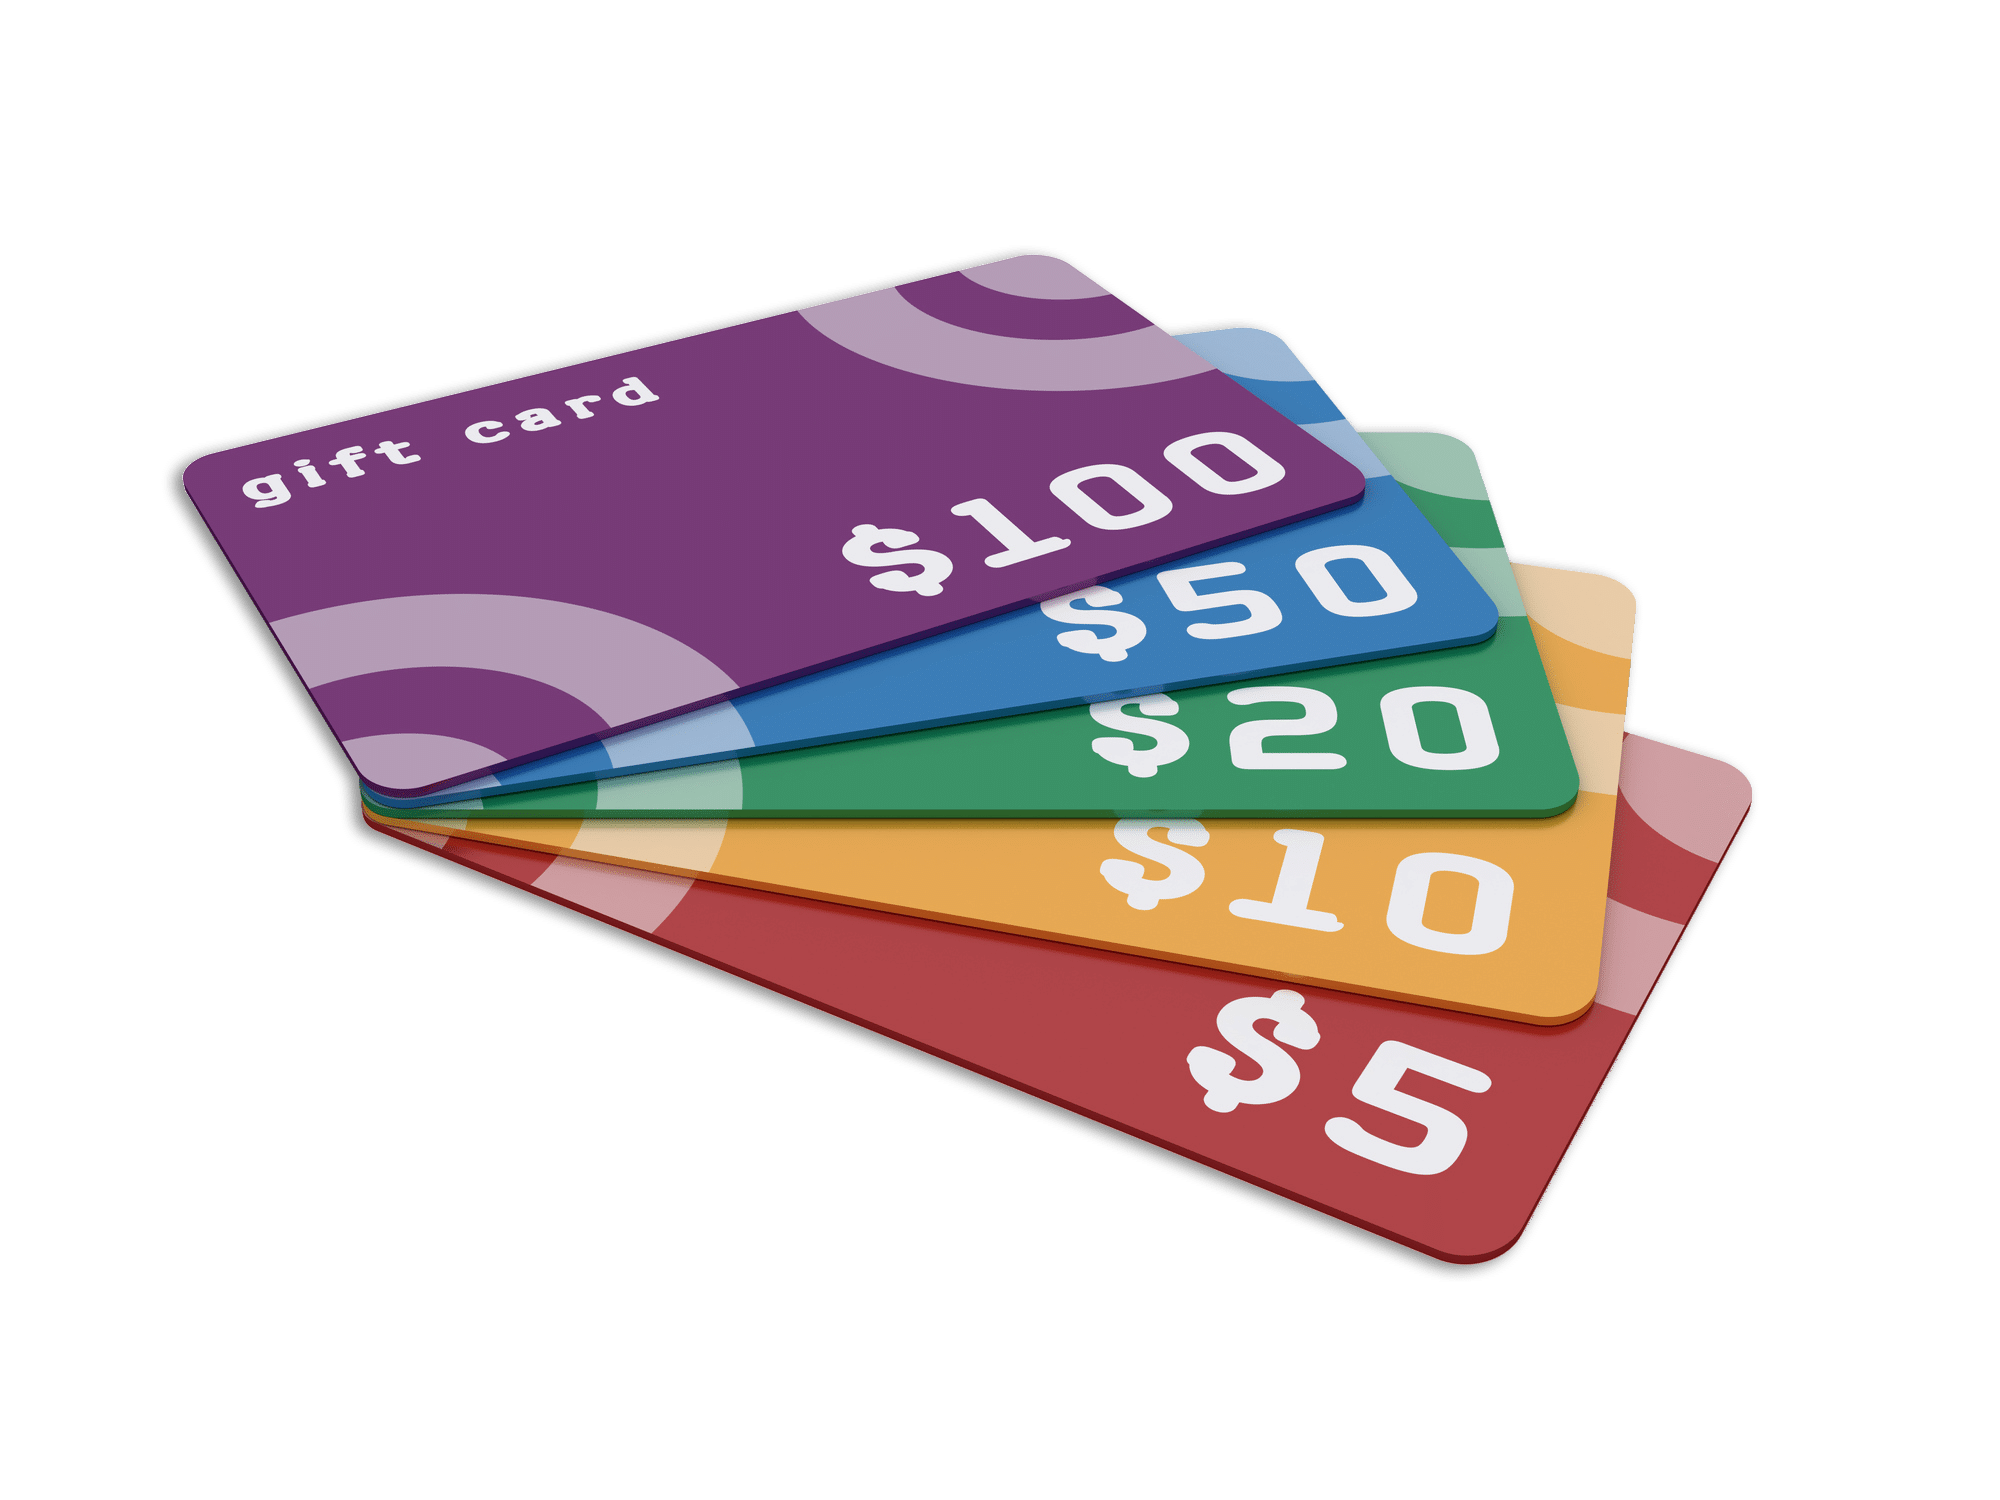 Stack of Gift Cards ranging from 5 to 100 dollars that can be earned via the BriteCo Rewards program